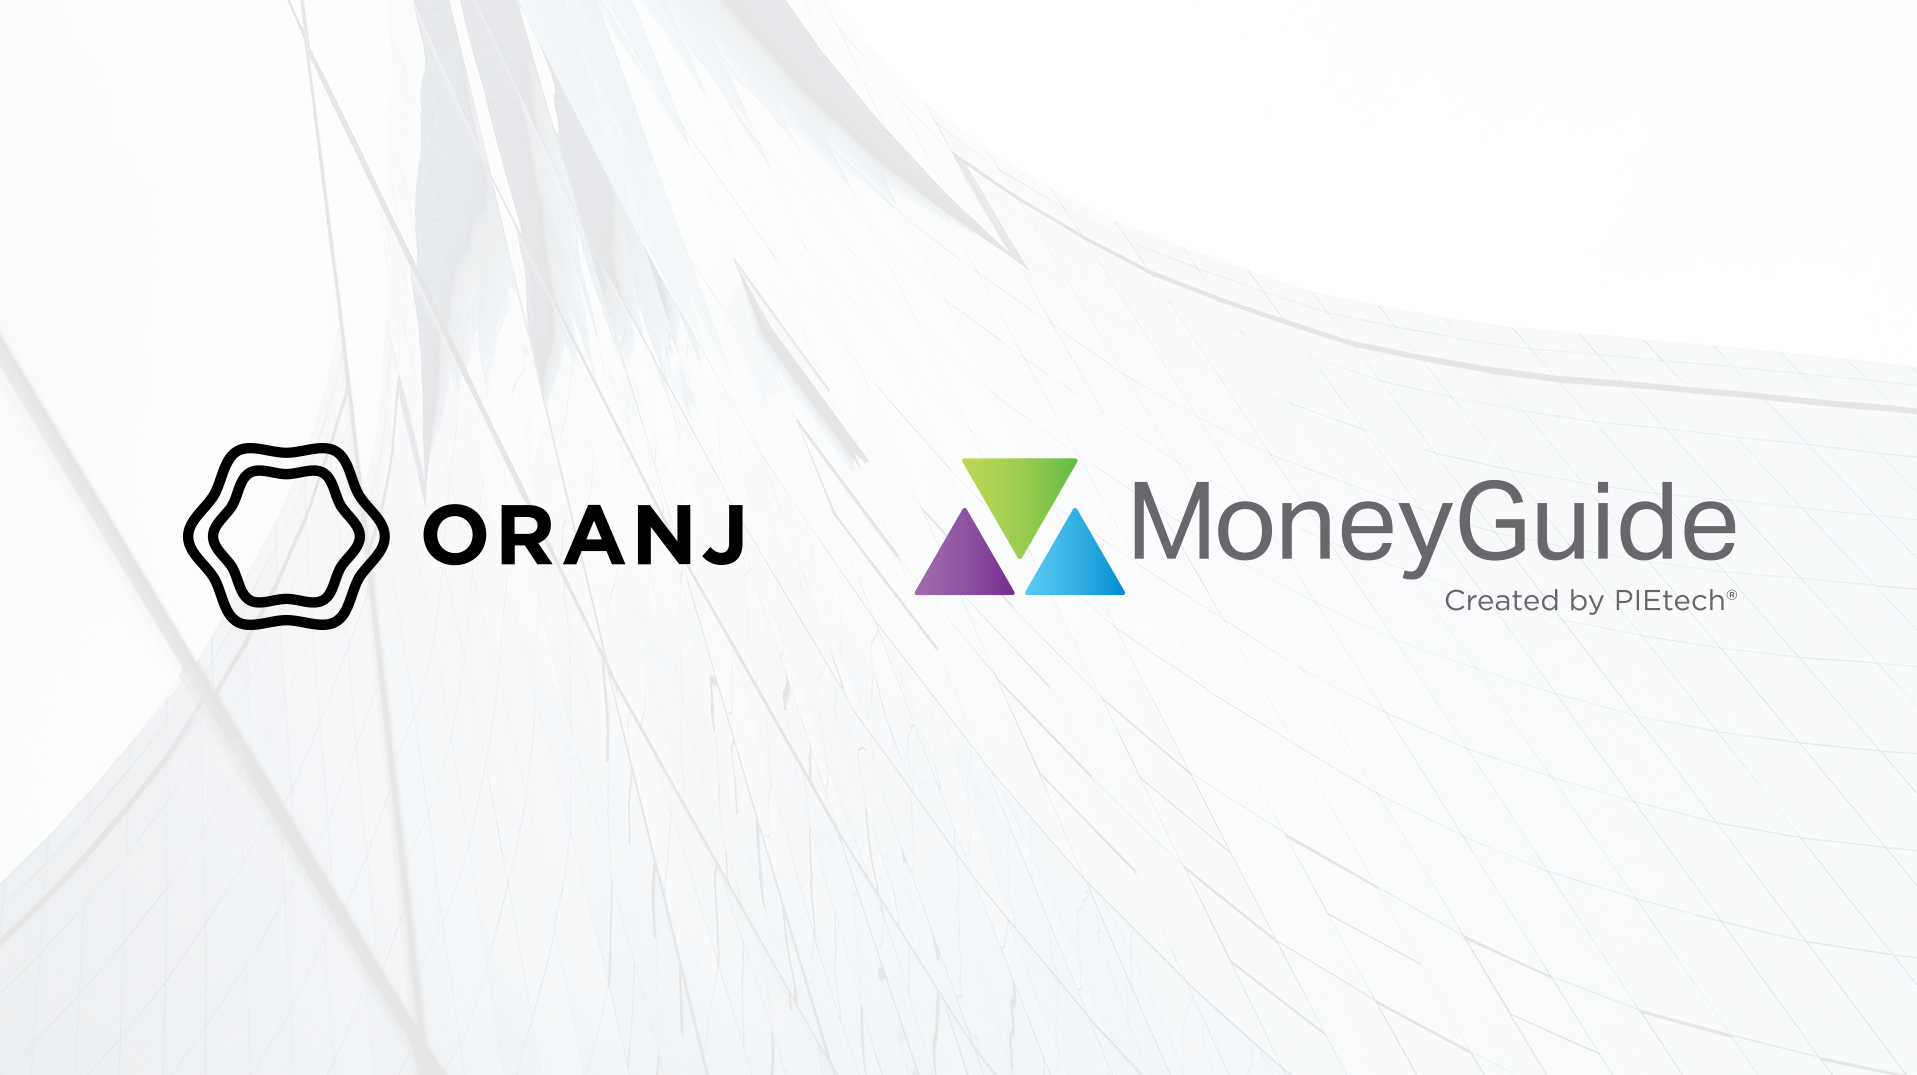 Oranj Announces New Integration with MoneyGuide